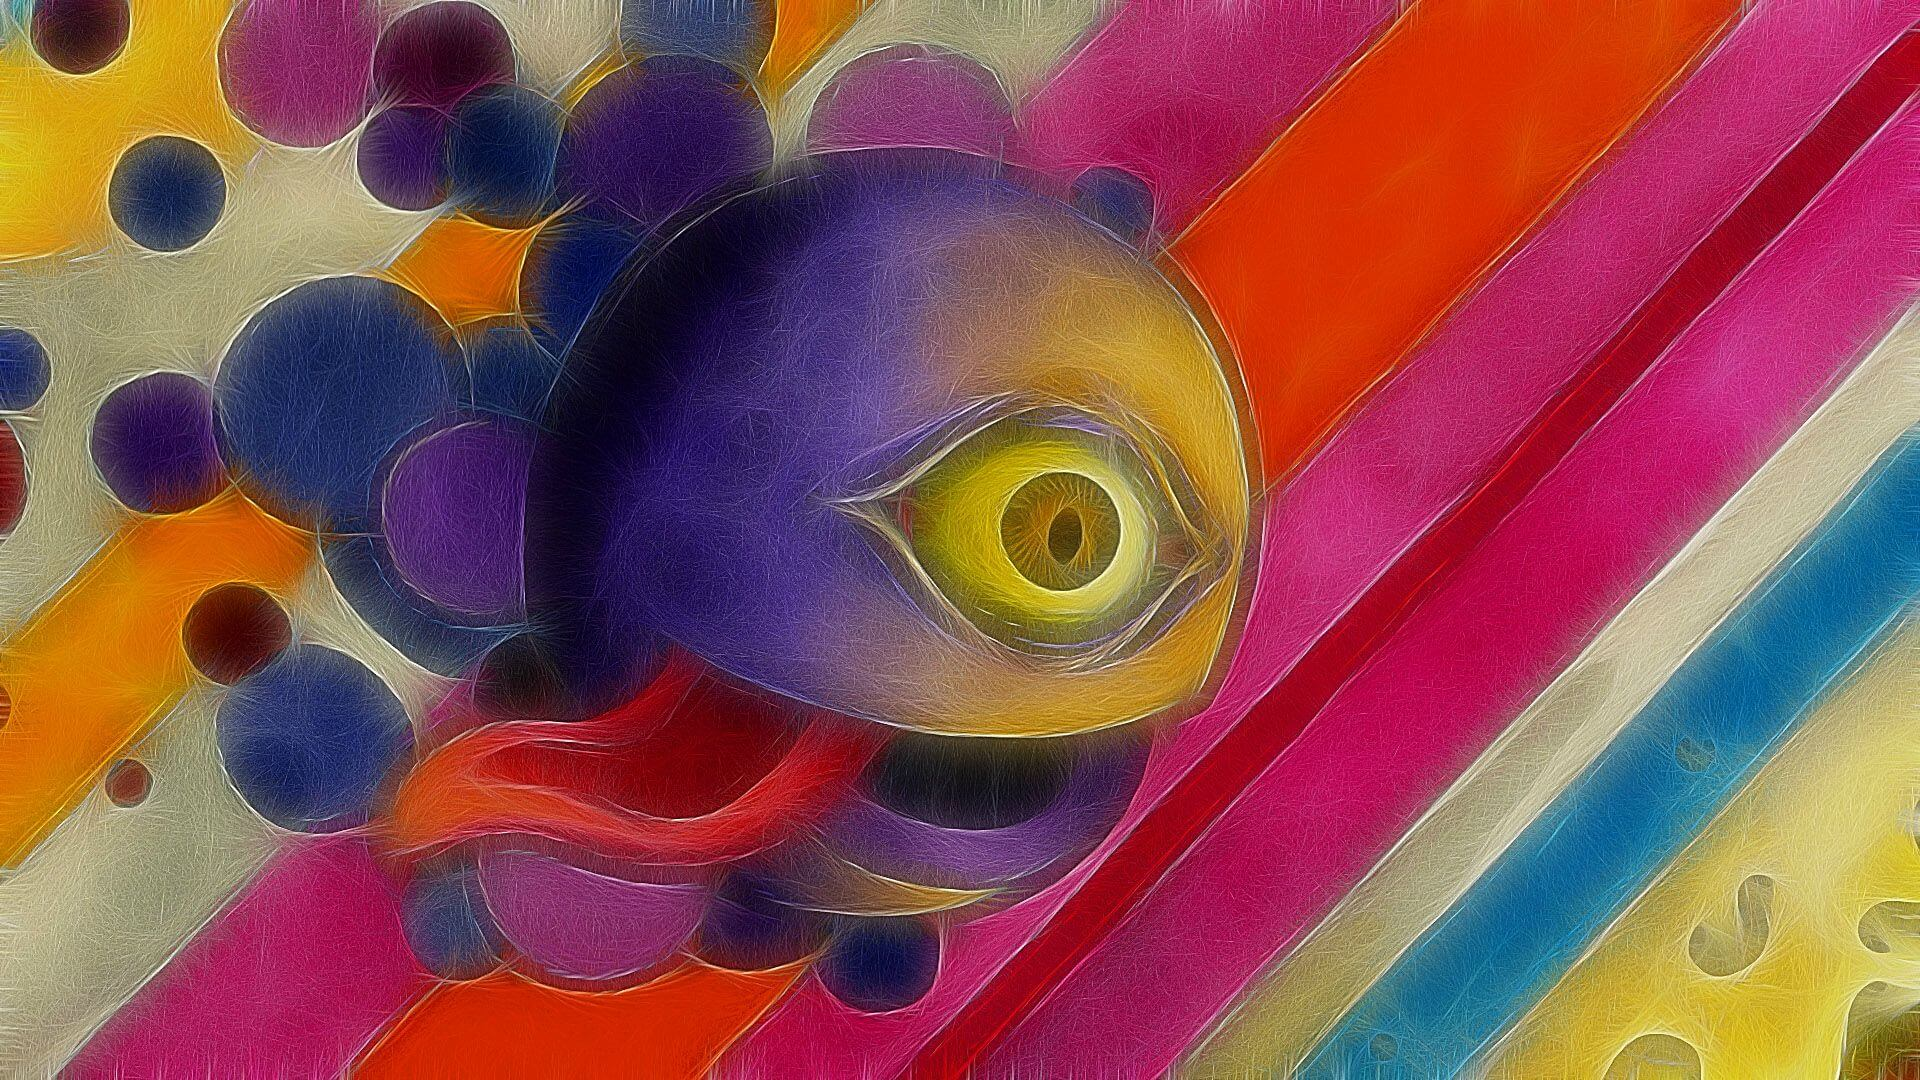 eye monster fantacy Resolution Desktop Wallpaper & HD Backgrounds